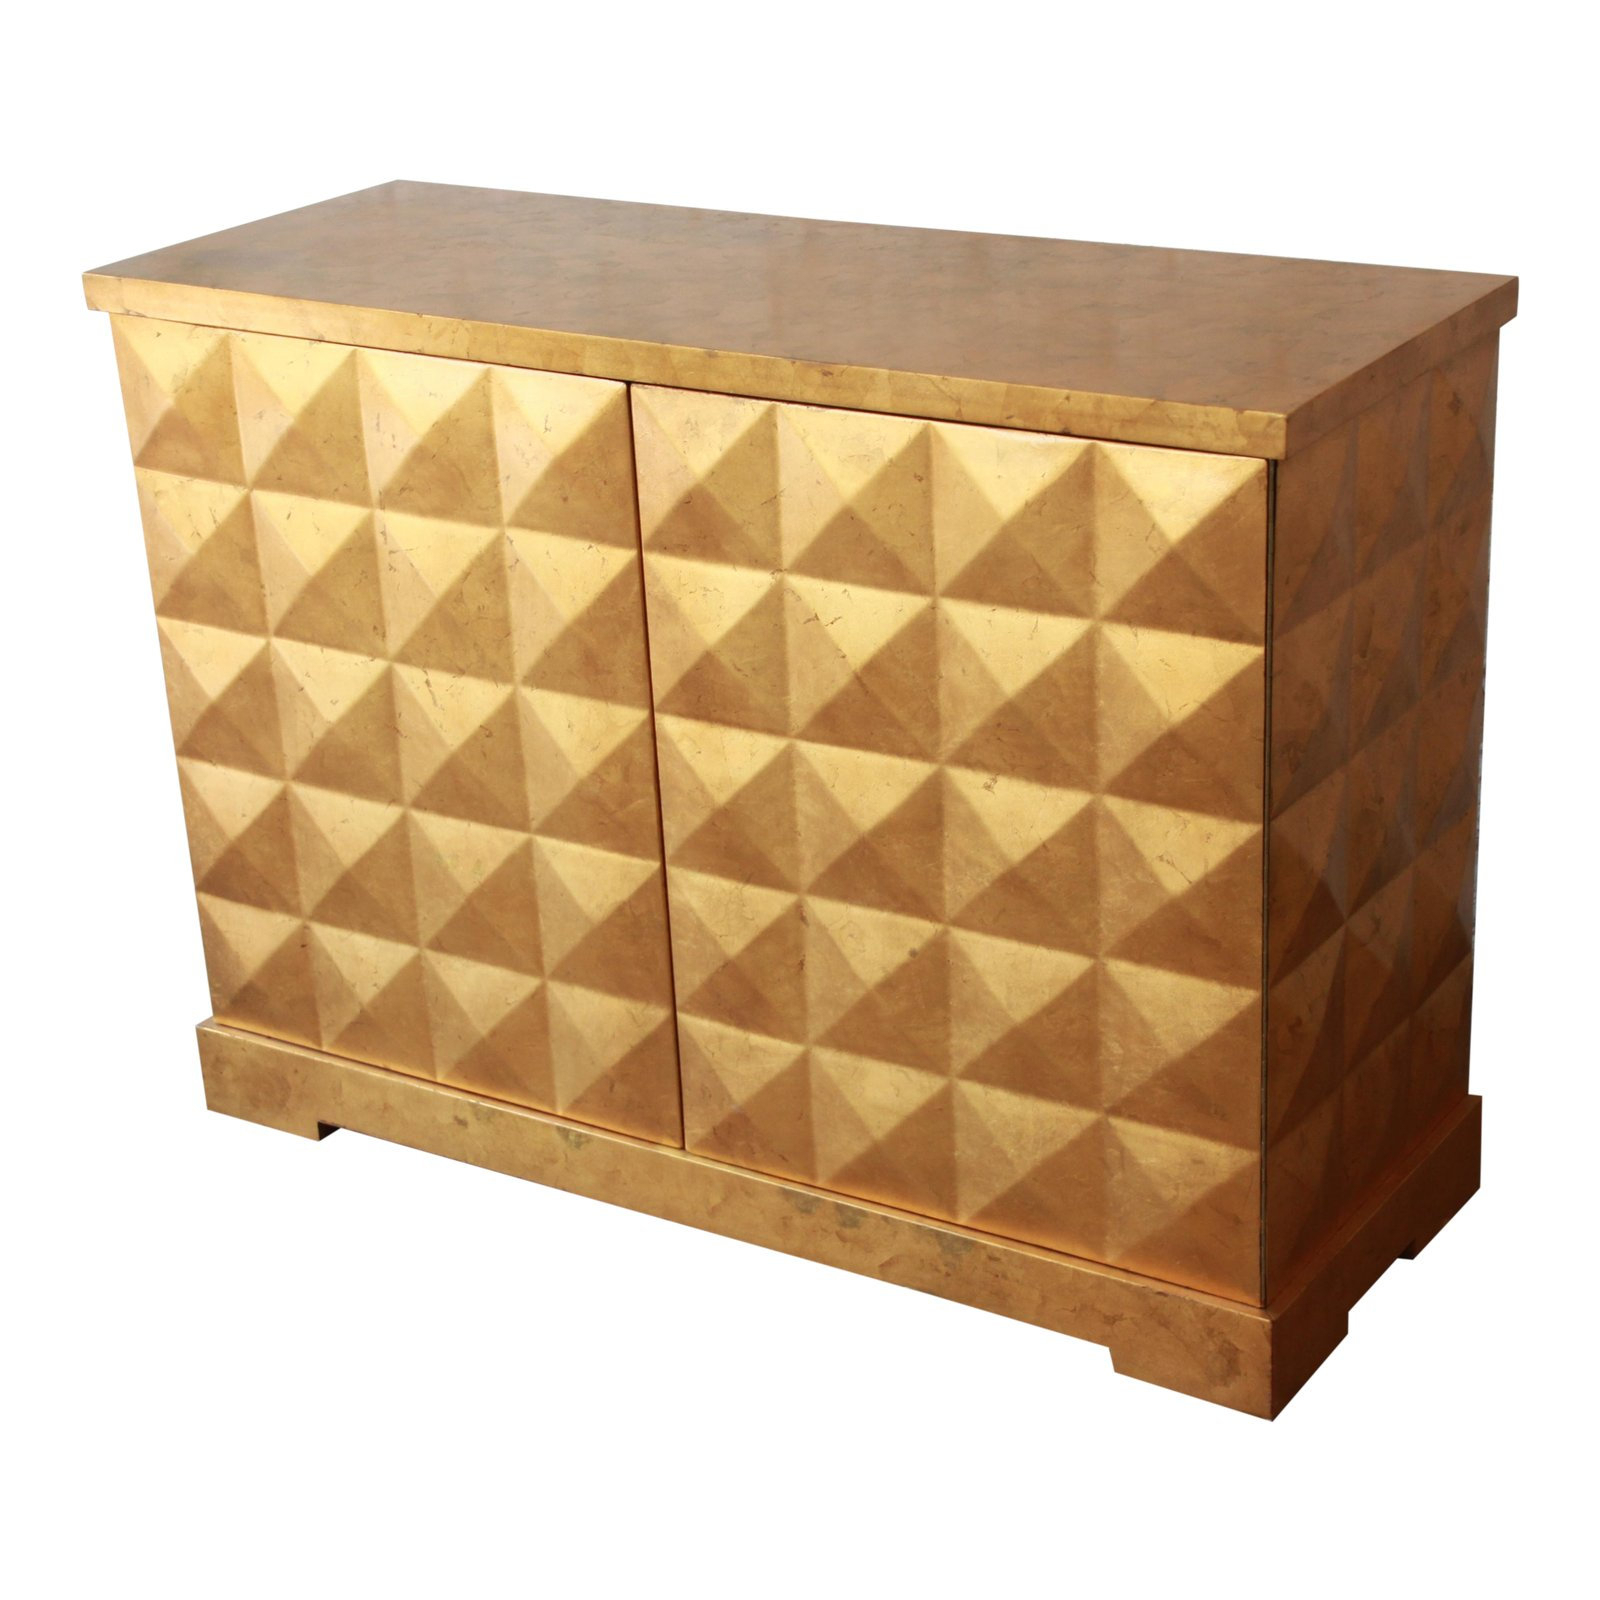 Barbara Barry For Baker Furniture Diamond Gold Leaf Cabinet Or Credenza Throughout Copper Leaf Wood Credenzas (View 2 of 30)